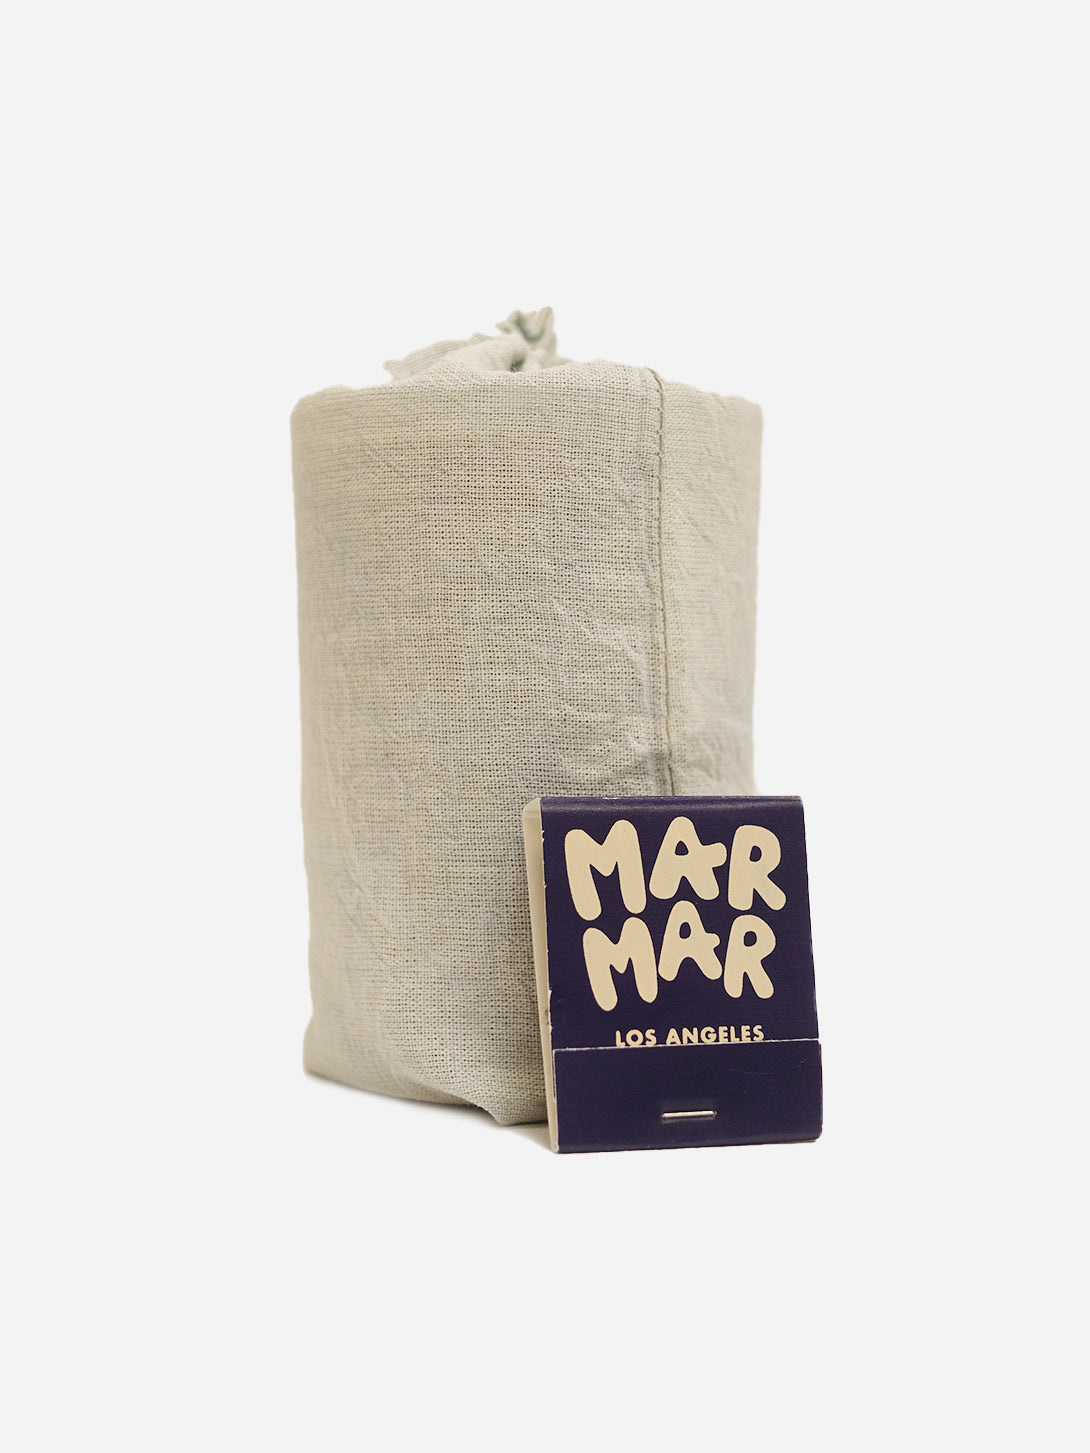 ONS Clothing Men's Mar Mar candles Other Desert Cities